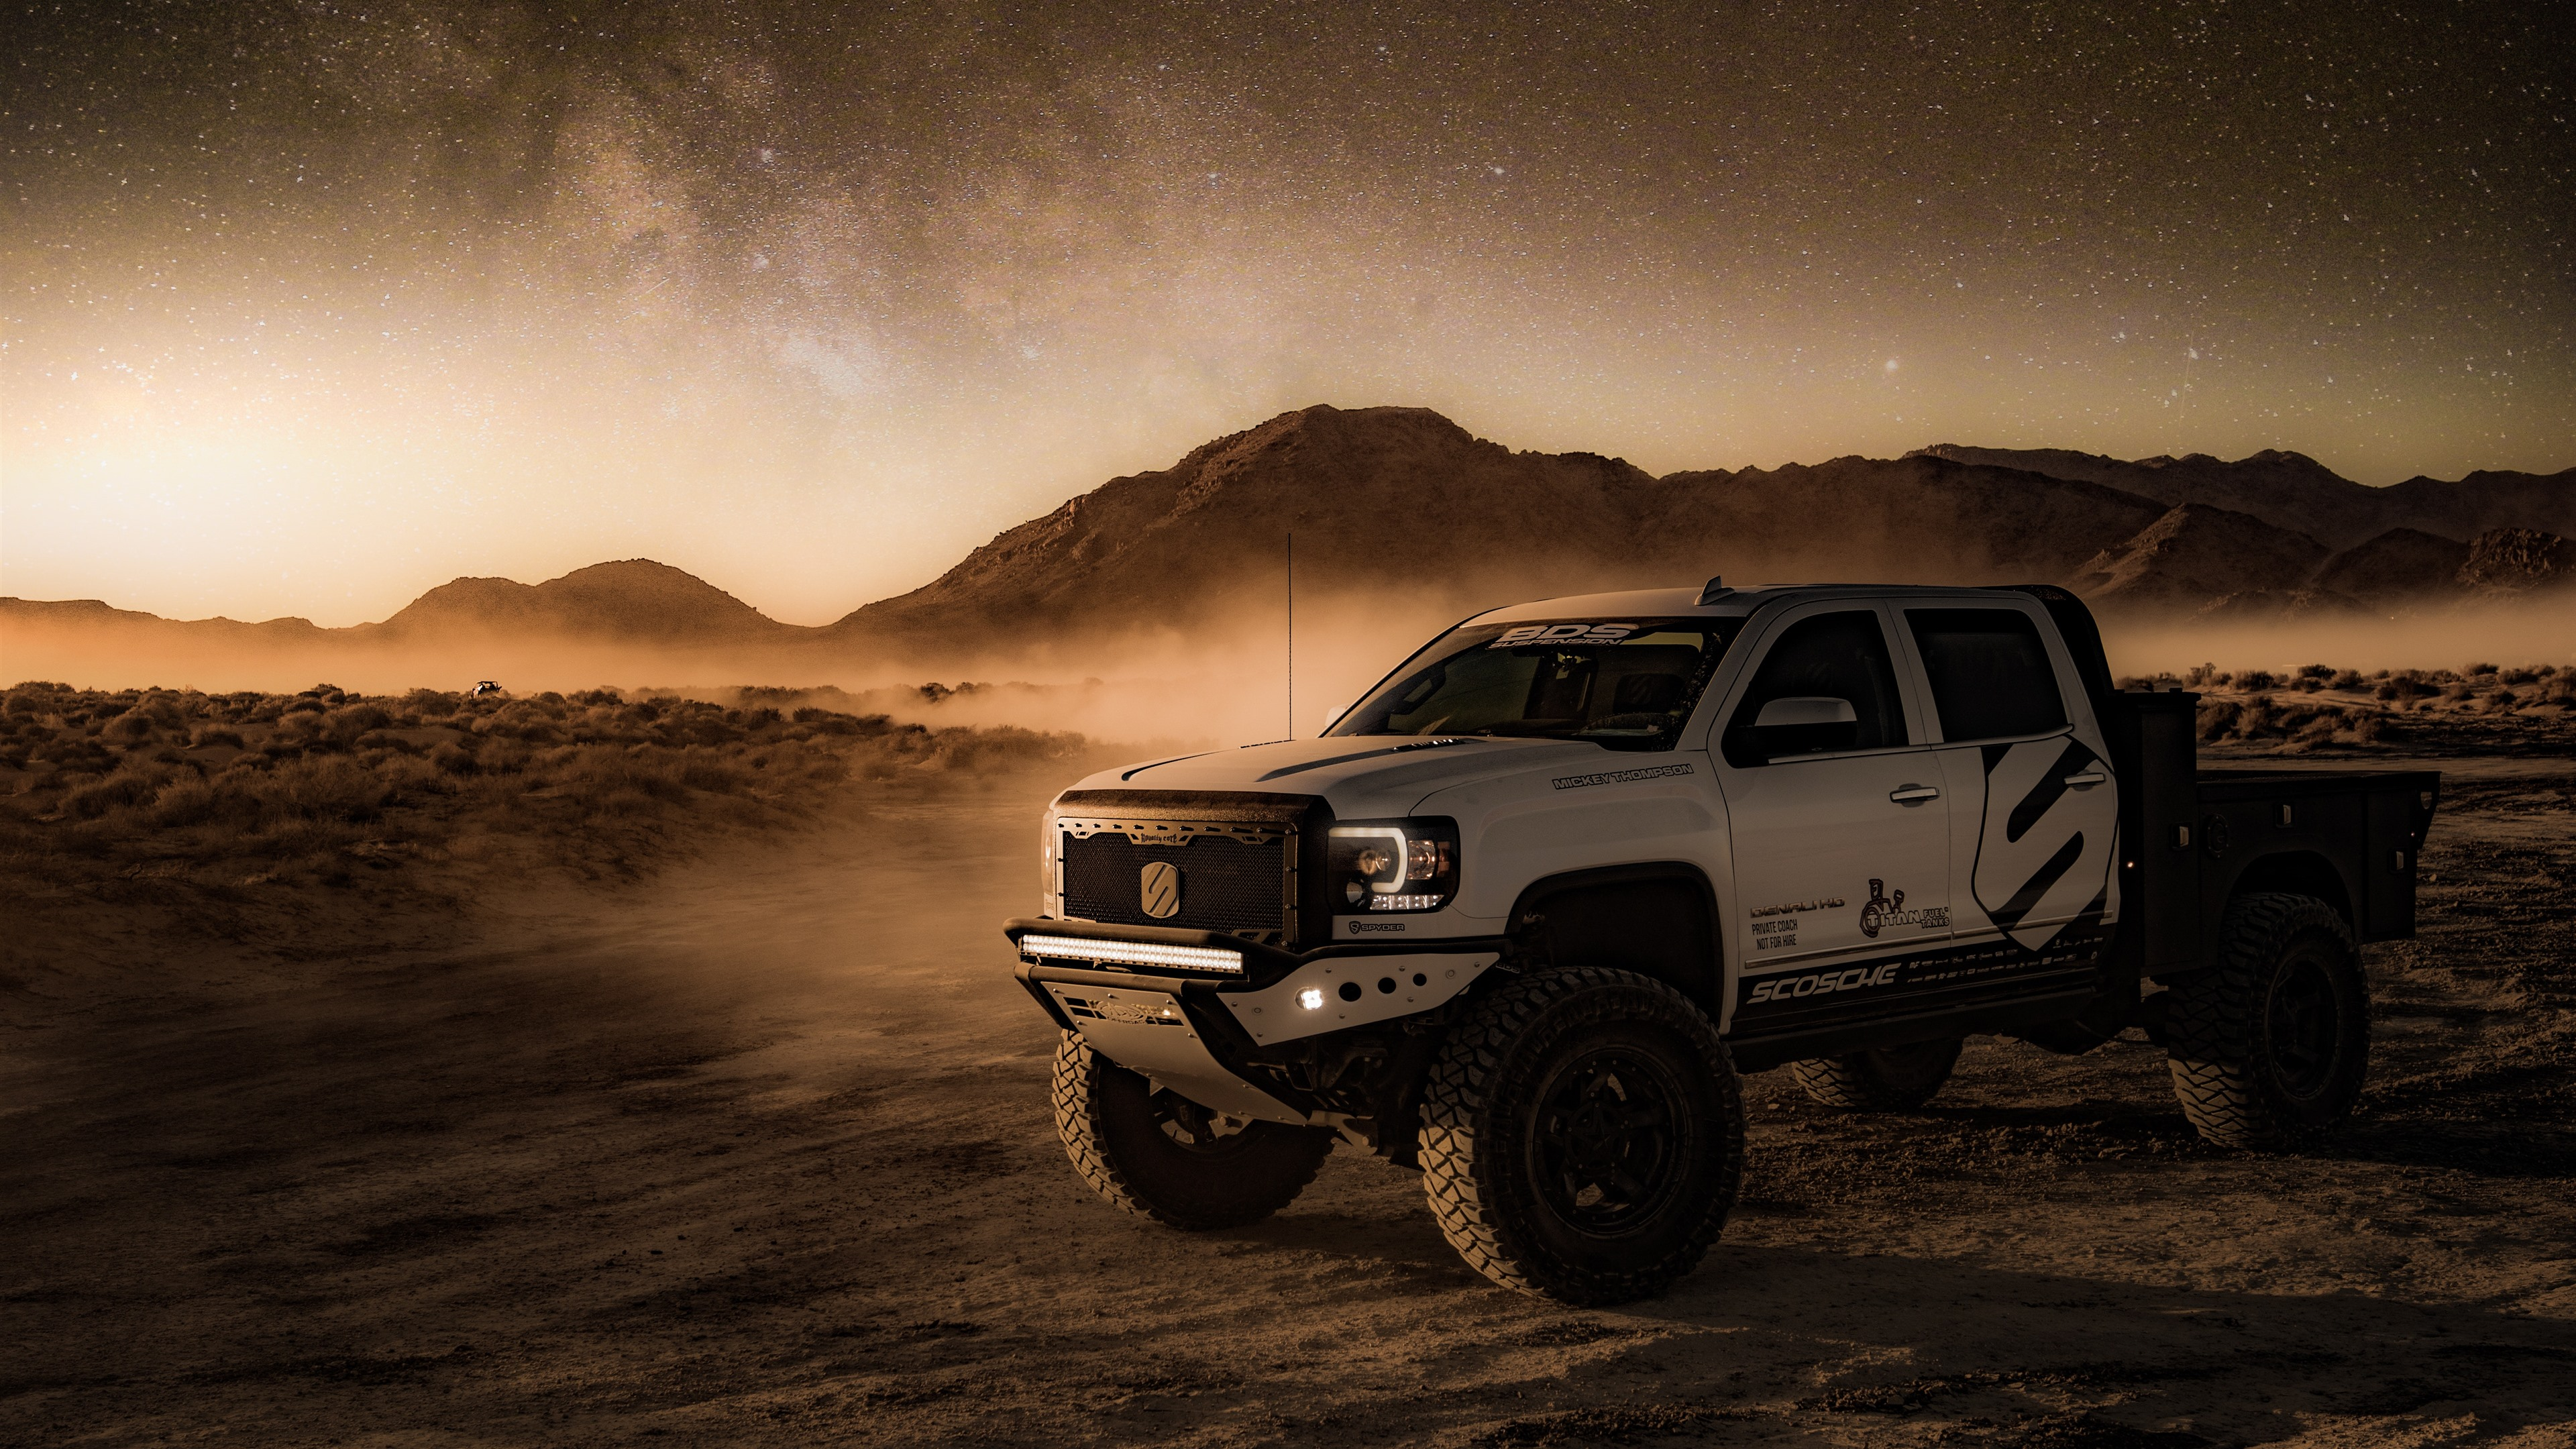 Wallpaper 4x4 Auto, Desert, Dust, Starry 5120x2880 UHD 5K